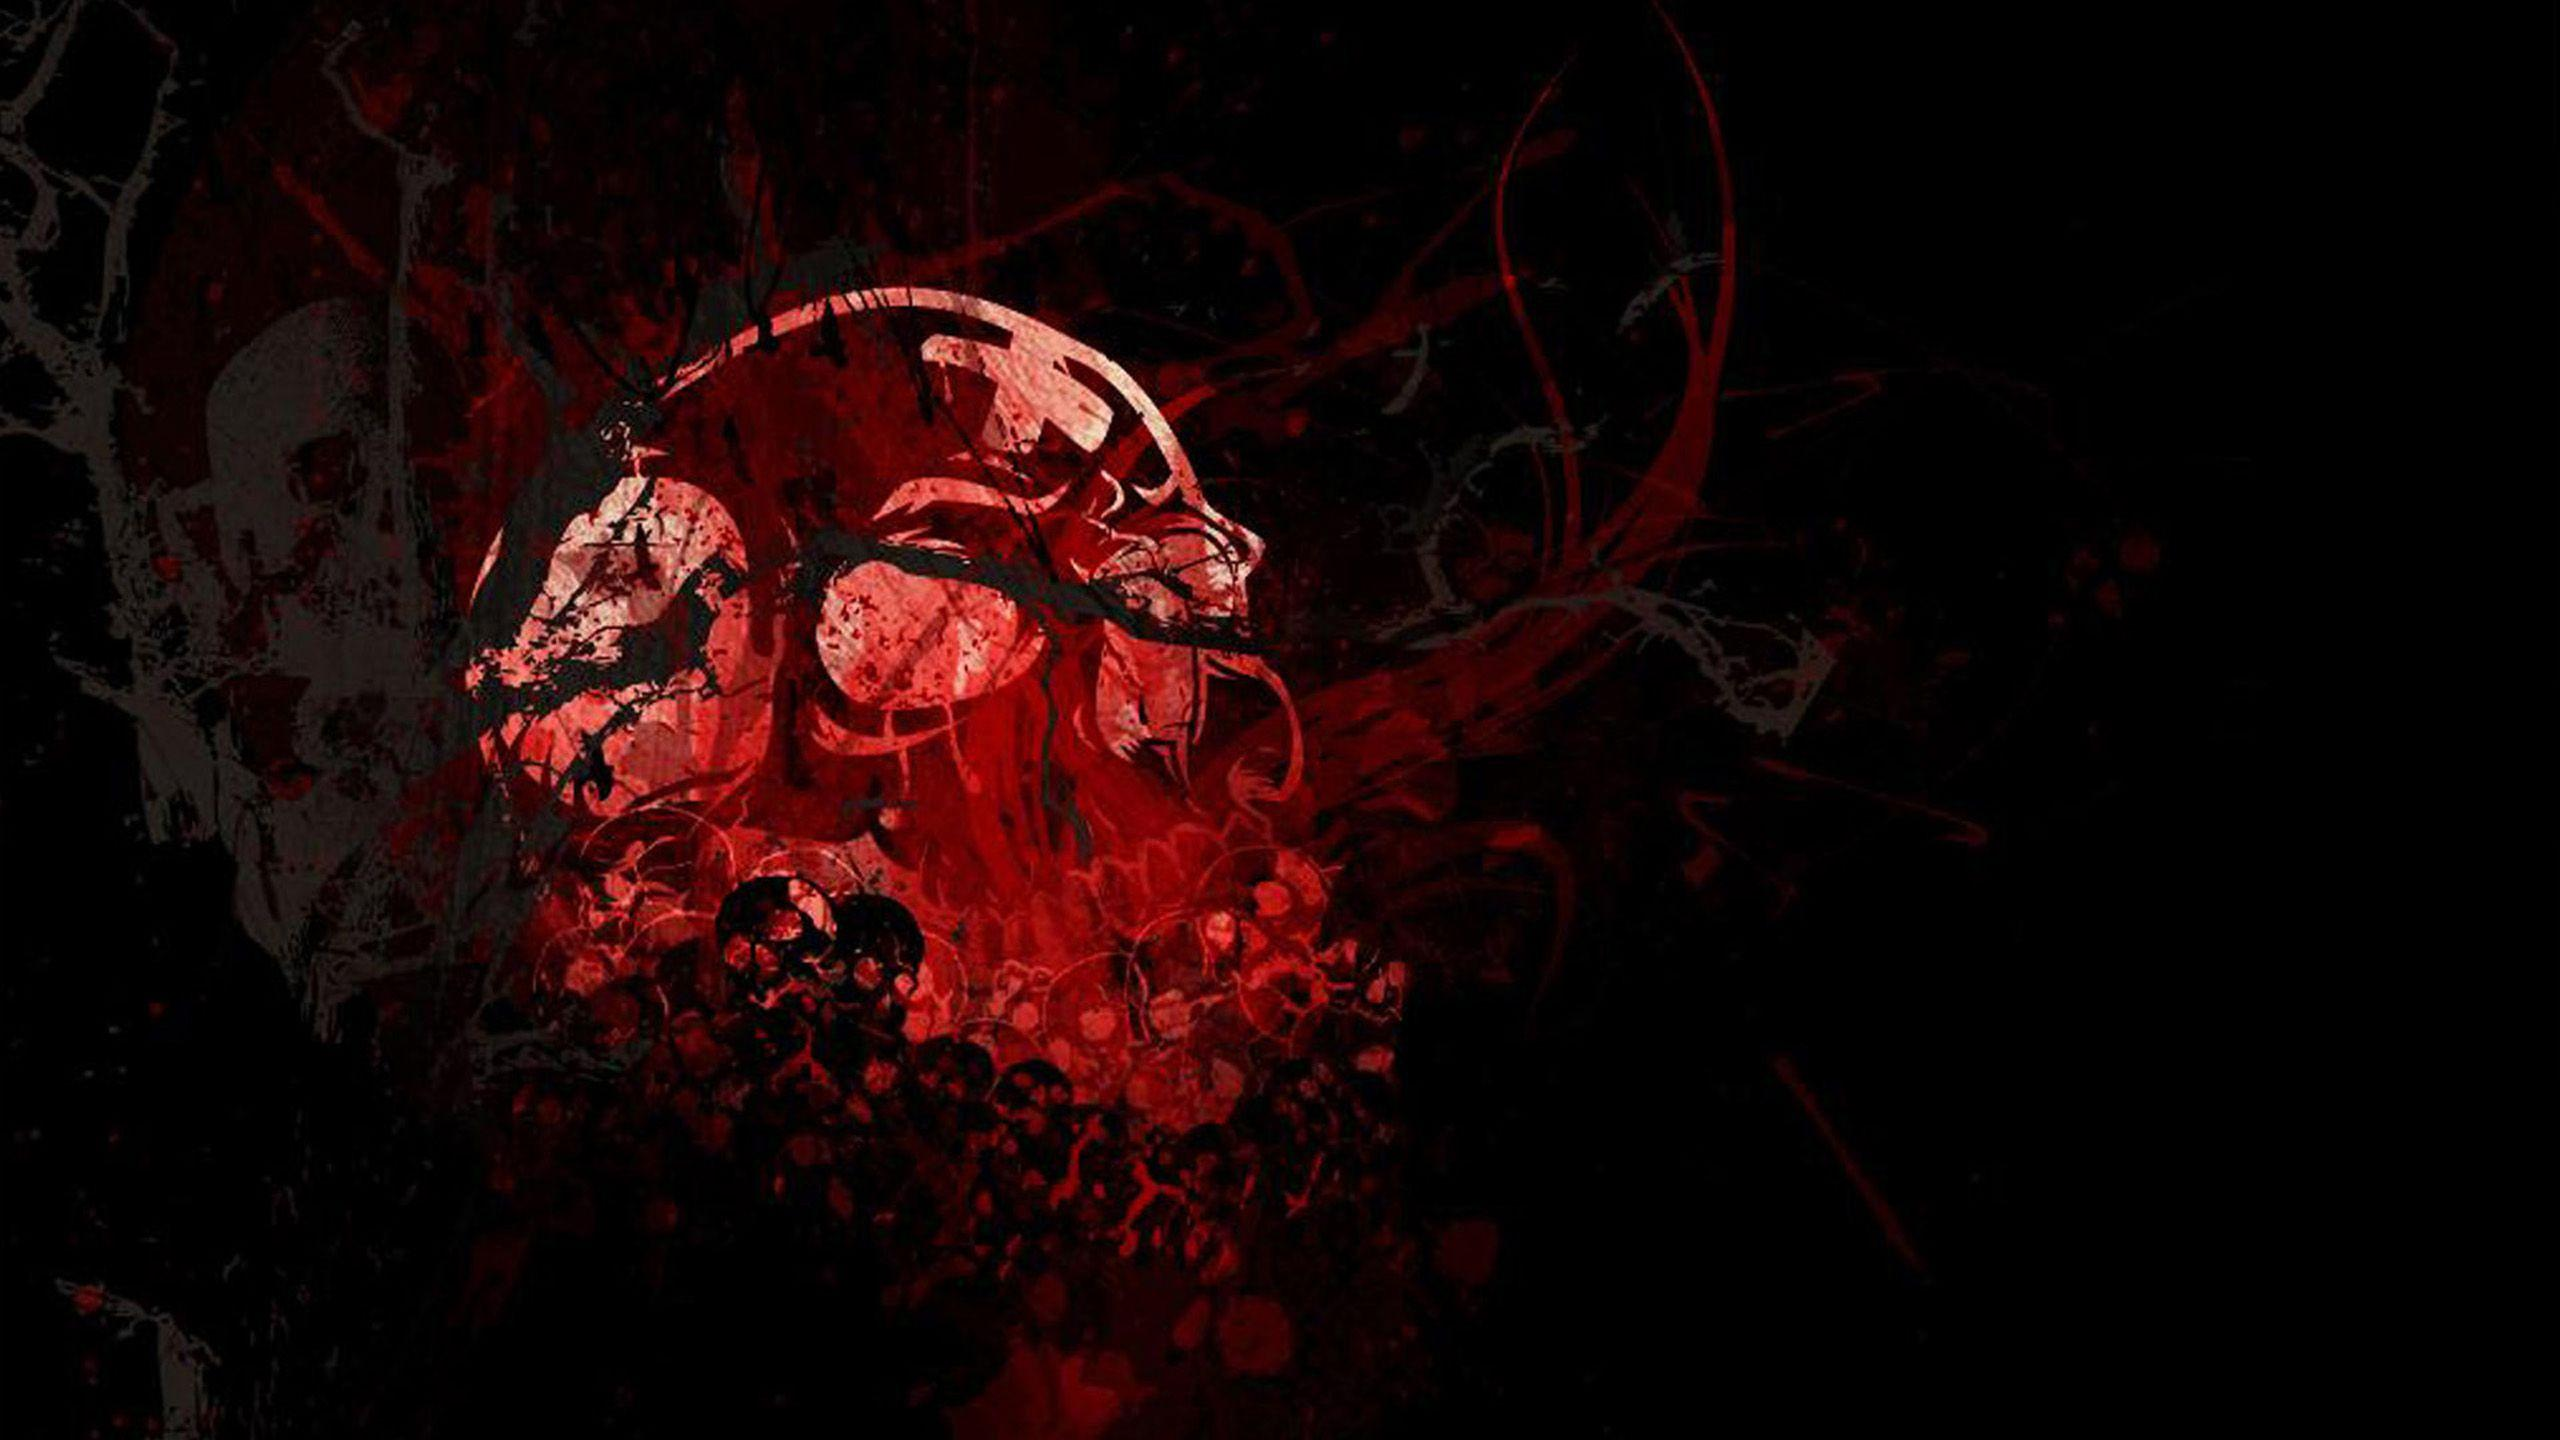 Red skull wallpapers Gallery